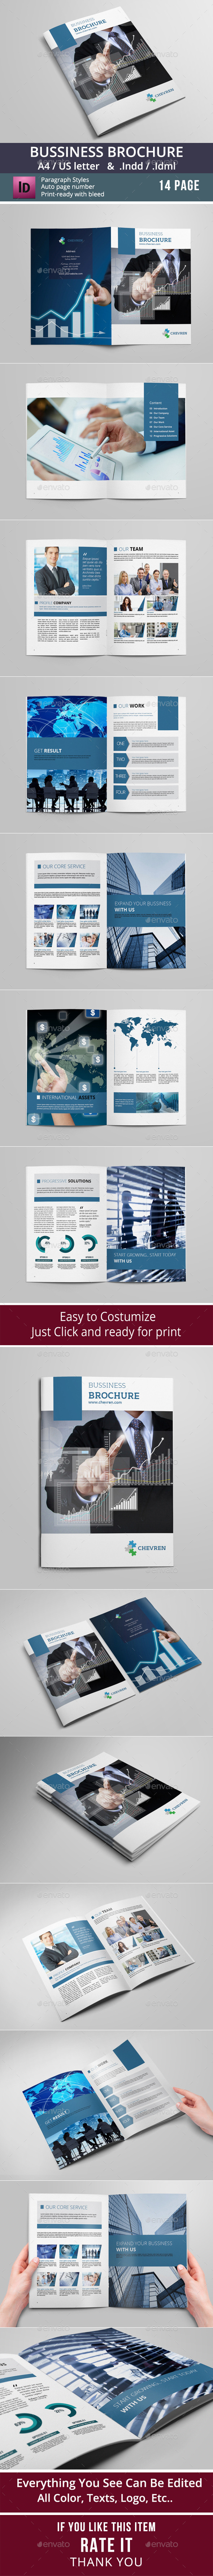 GraphicRiver Business Brochure Template 8862553